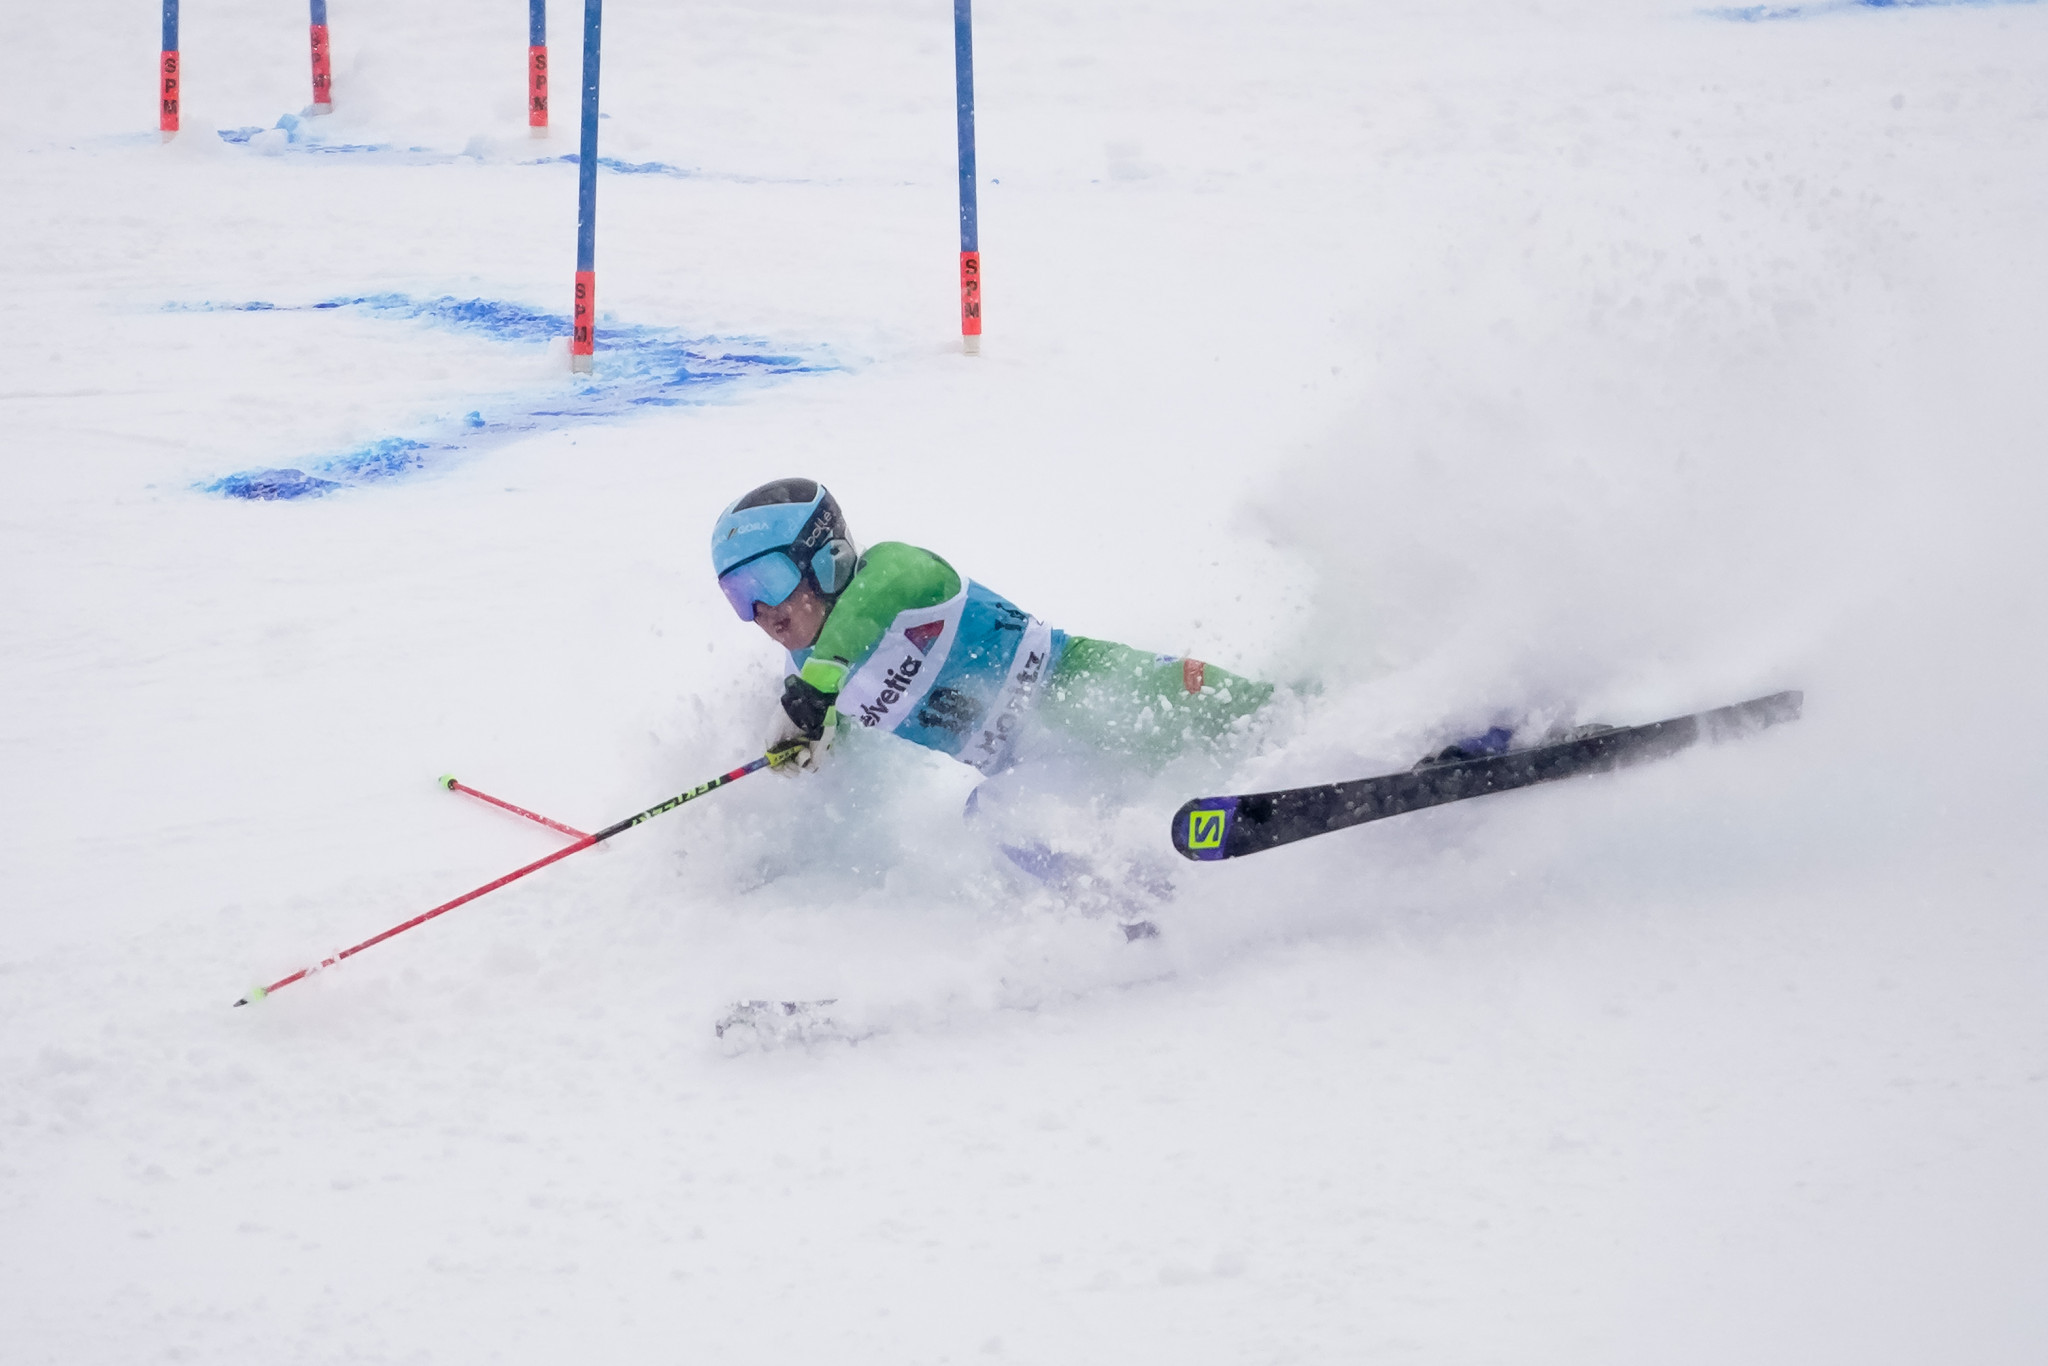 Slovenia's Meta Hrovat has had a mixed season of results having either withdrawn, crashed out or been disqualified from several races, including the FIS World Alpine Ski Championships in Åre ©Getty Images